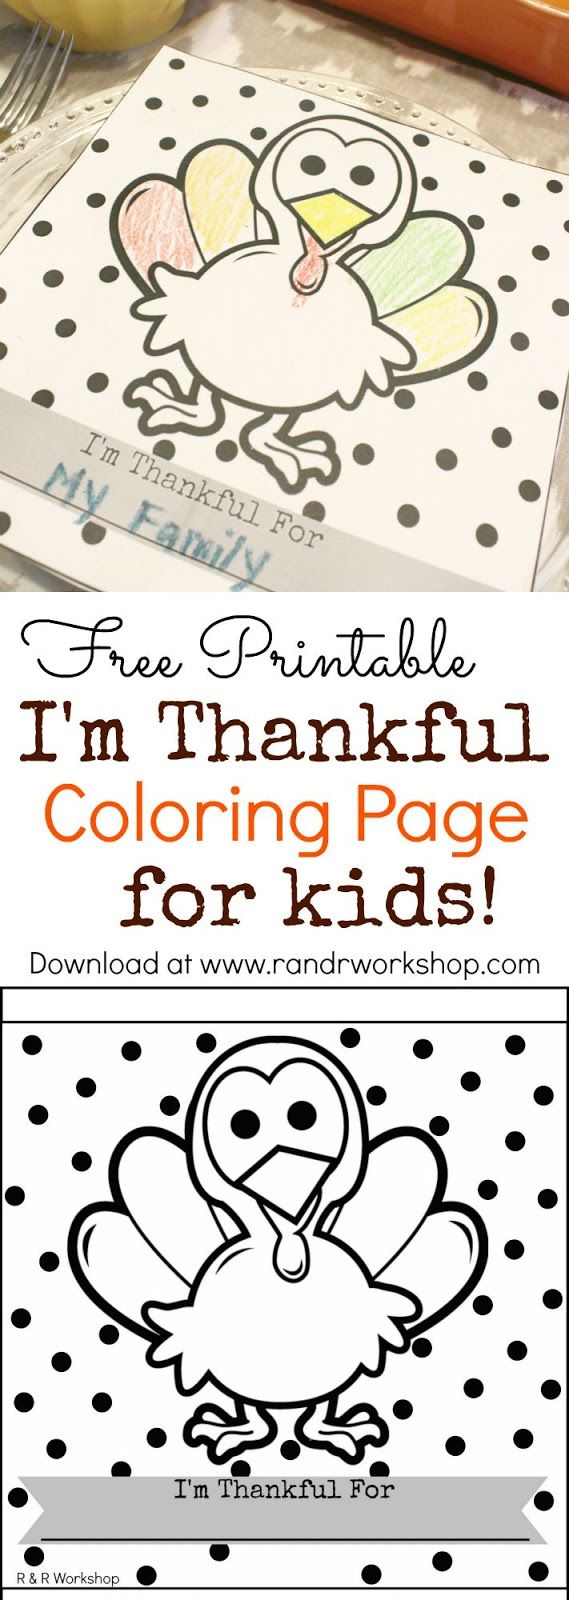 I'm Thankful Coloring Page for Kids (Free Printable). Entertain the kids while Thanksgiving Dinner is being prepared or during dinner!